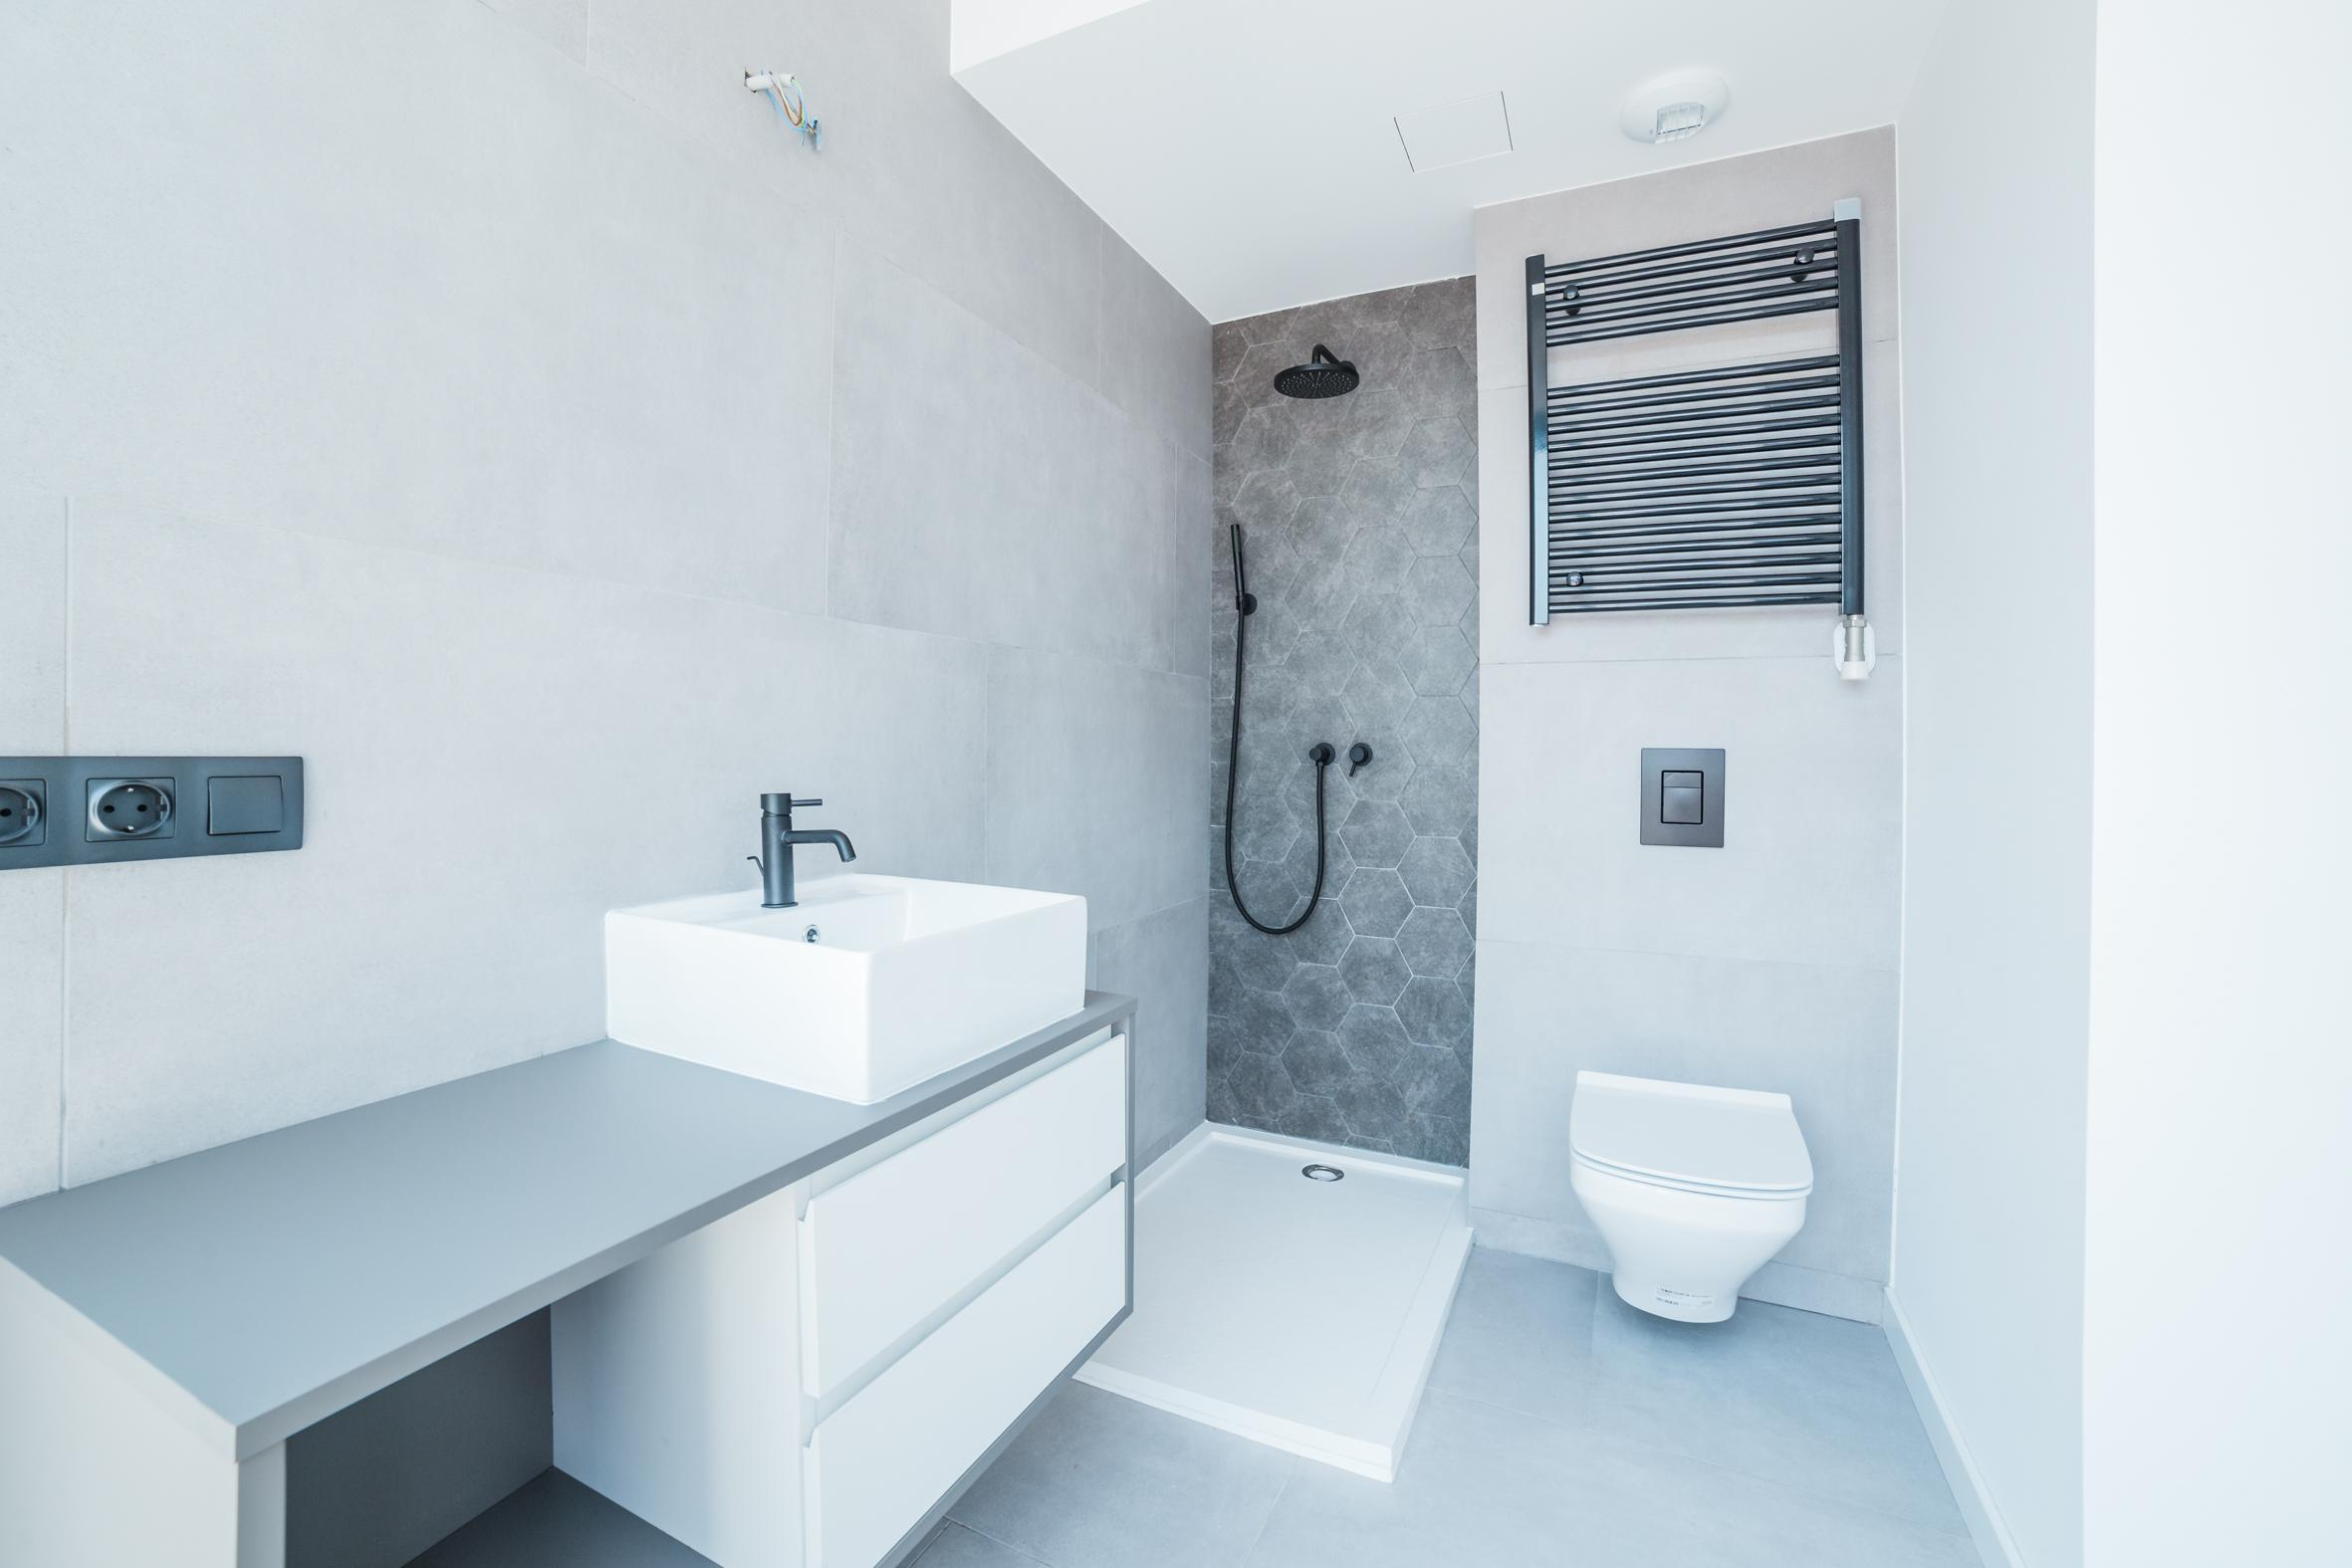 251675 Penthouse for sale in Les Corts, Les Corts 11